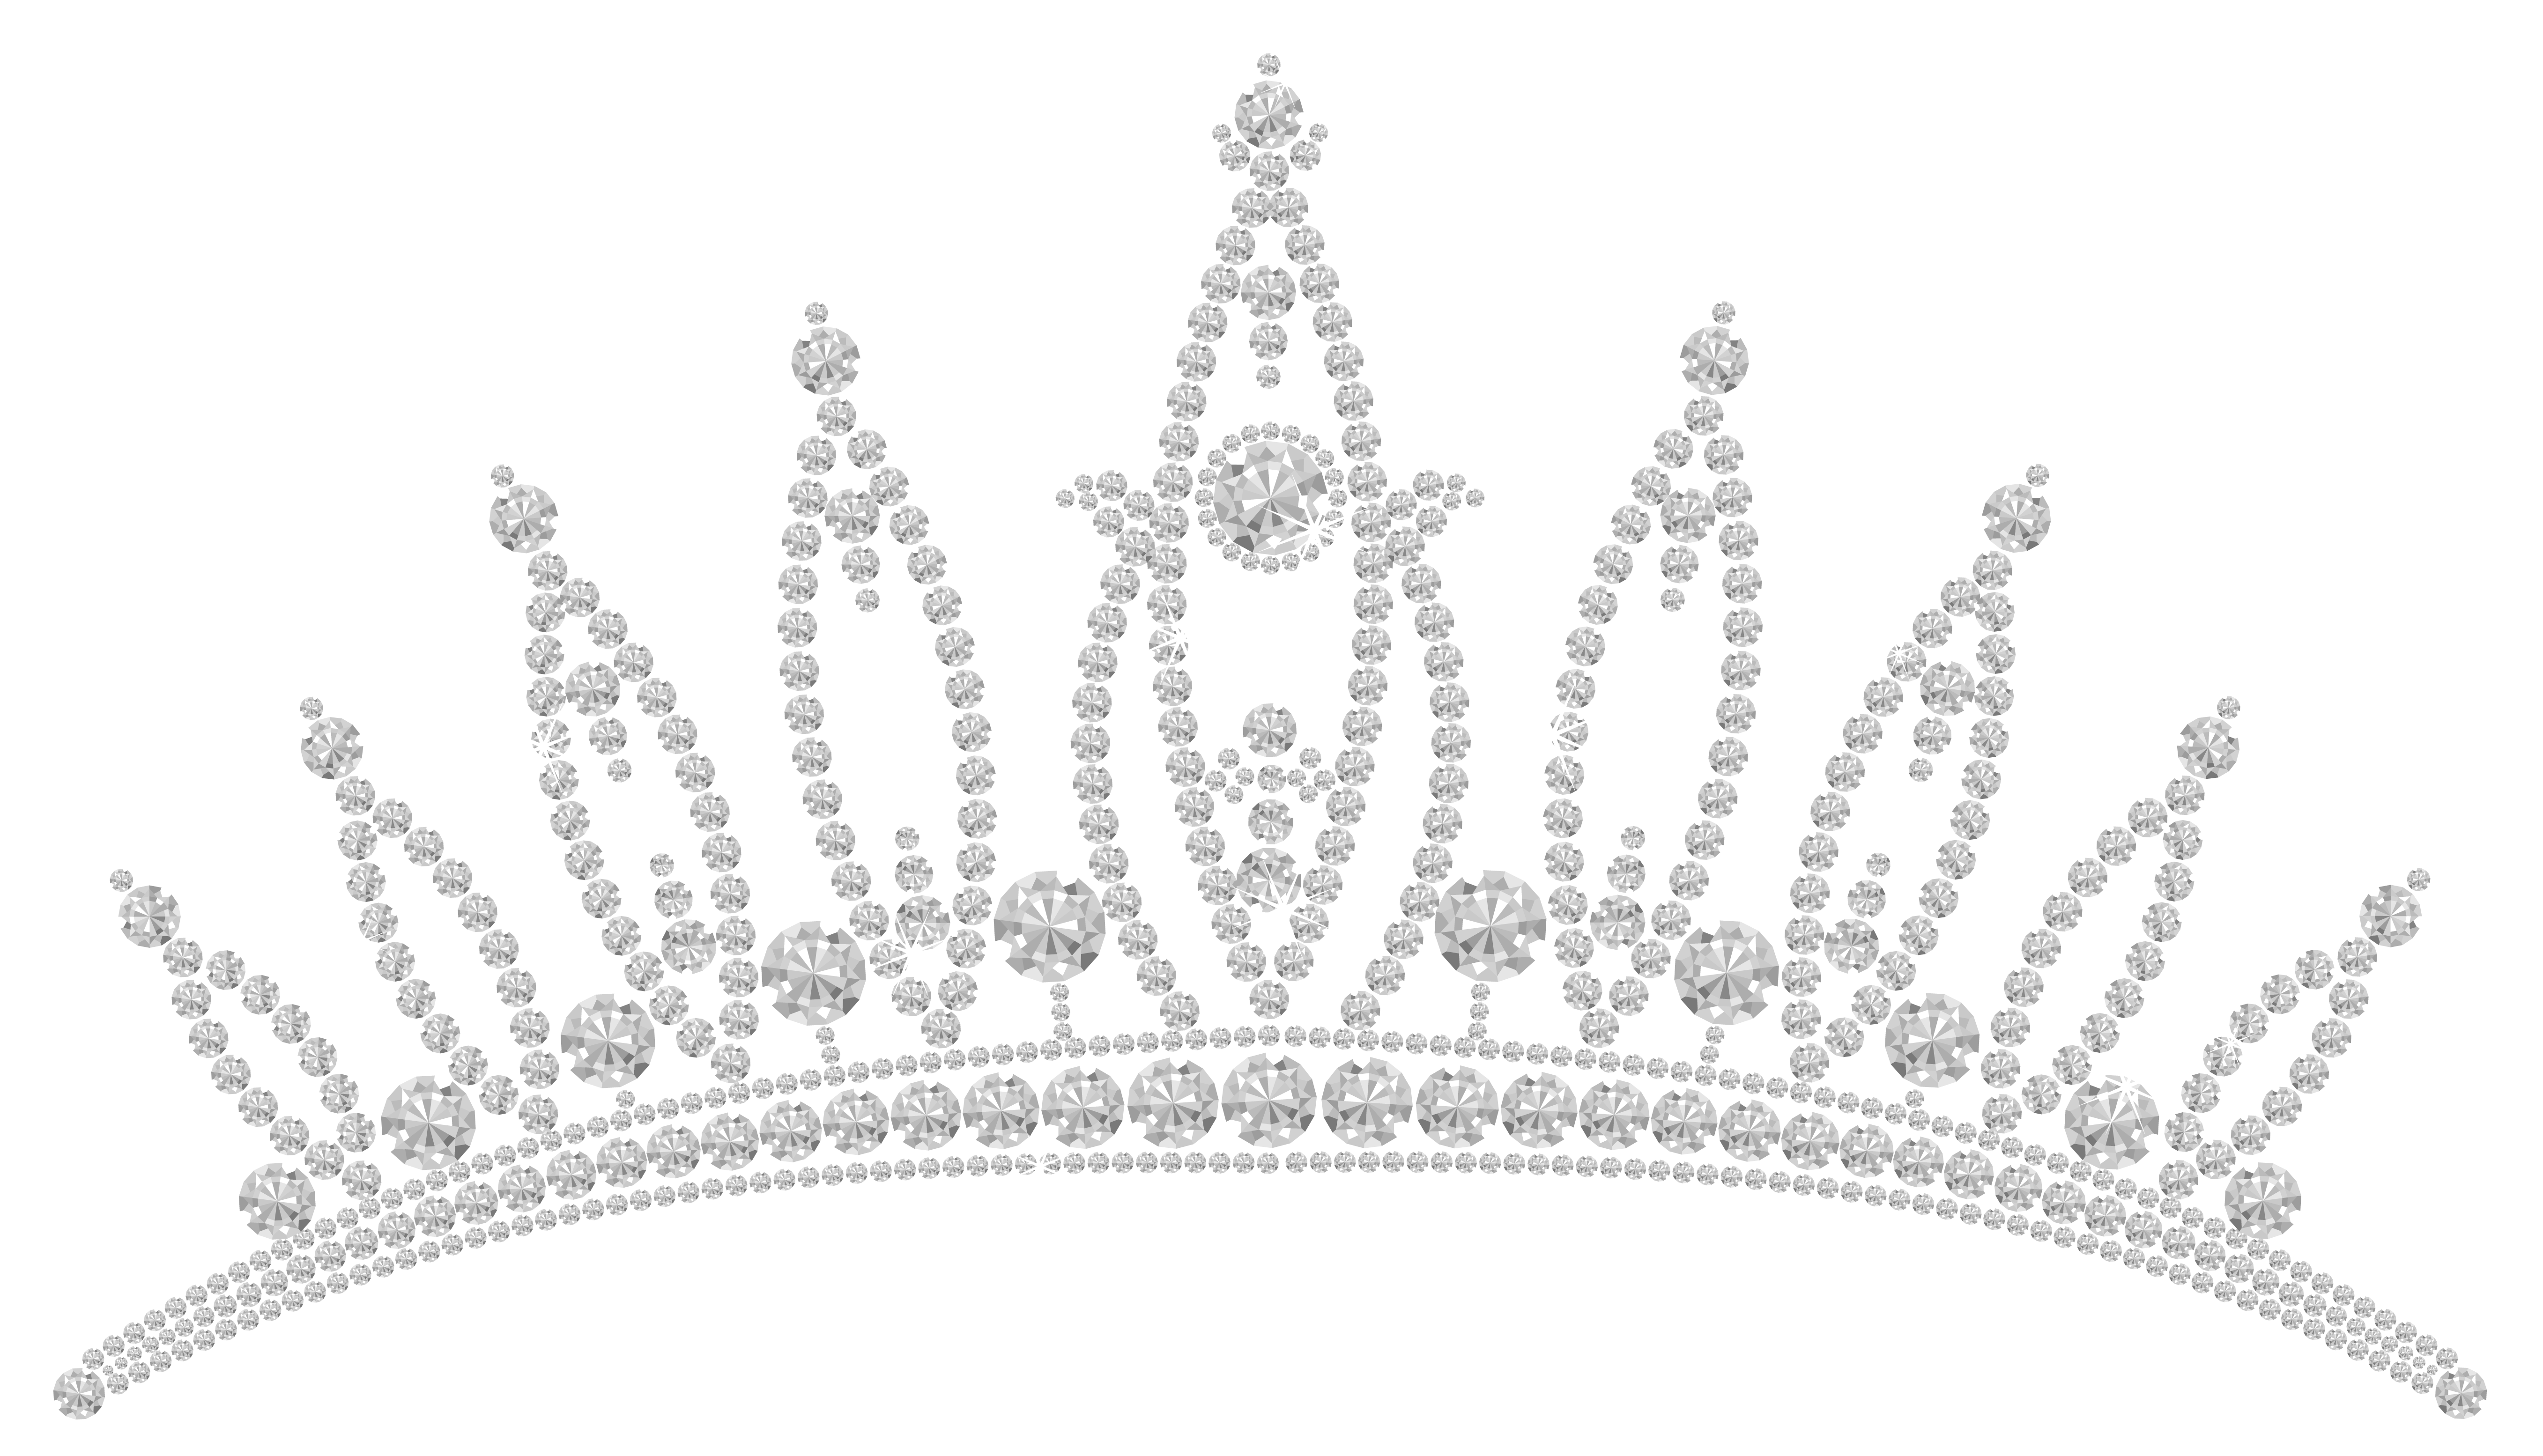 Free birthday crown clipart clip freeuse Diamond Tiara PNG Clipart Picture | Gallery Yopriceville - High ... clip freeuse